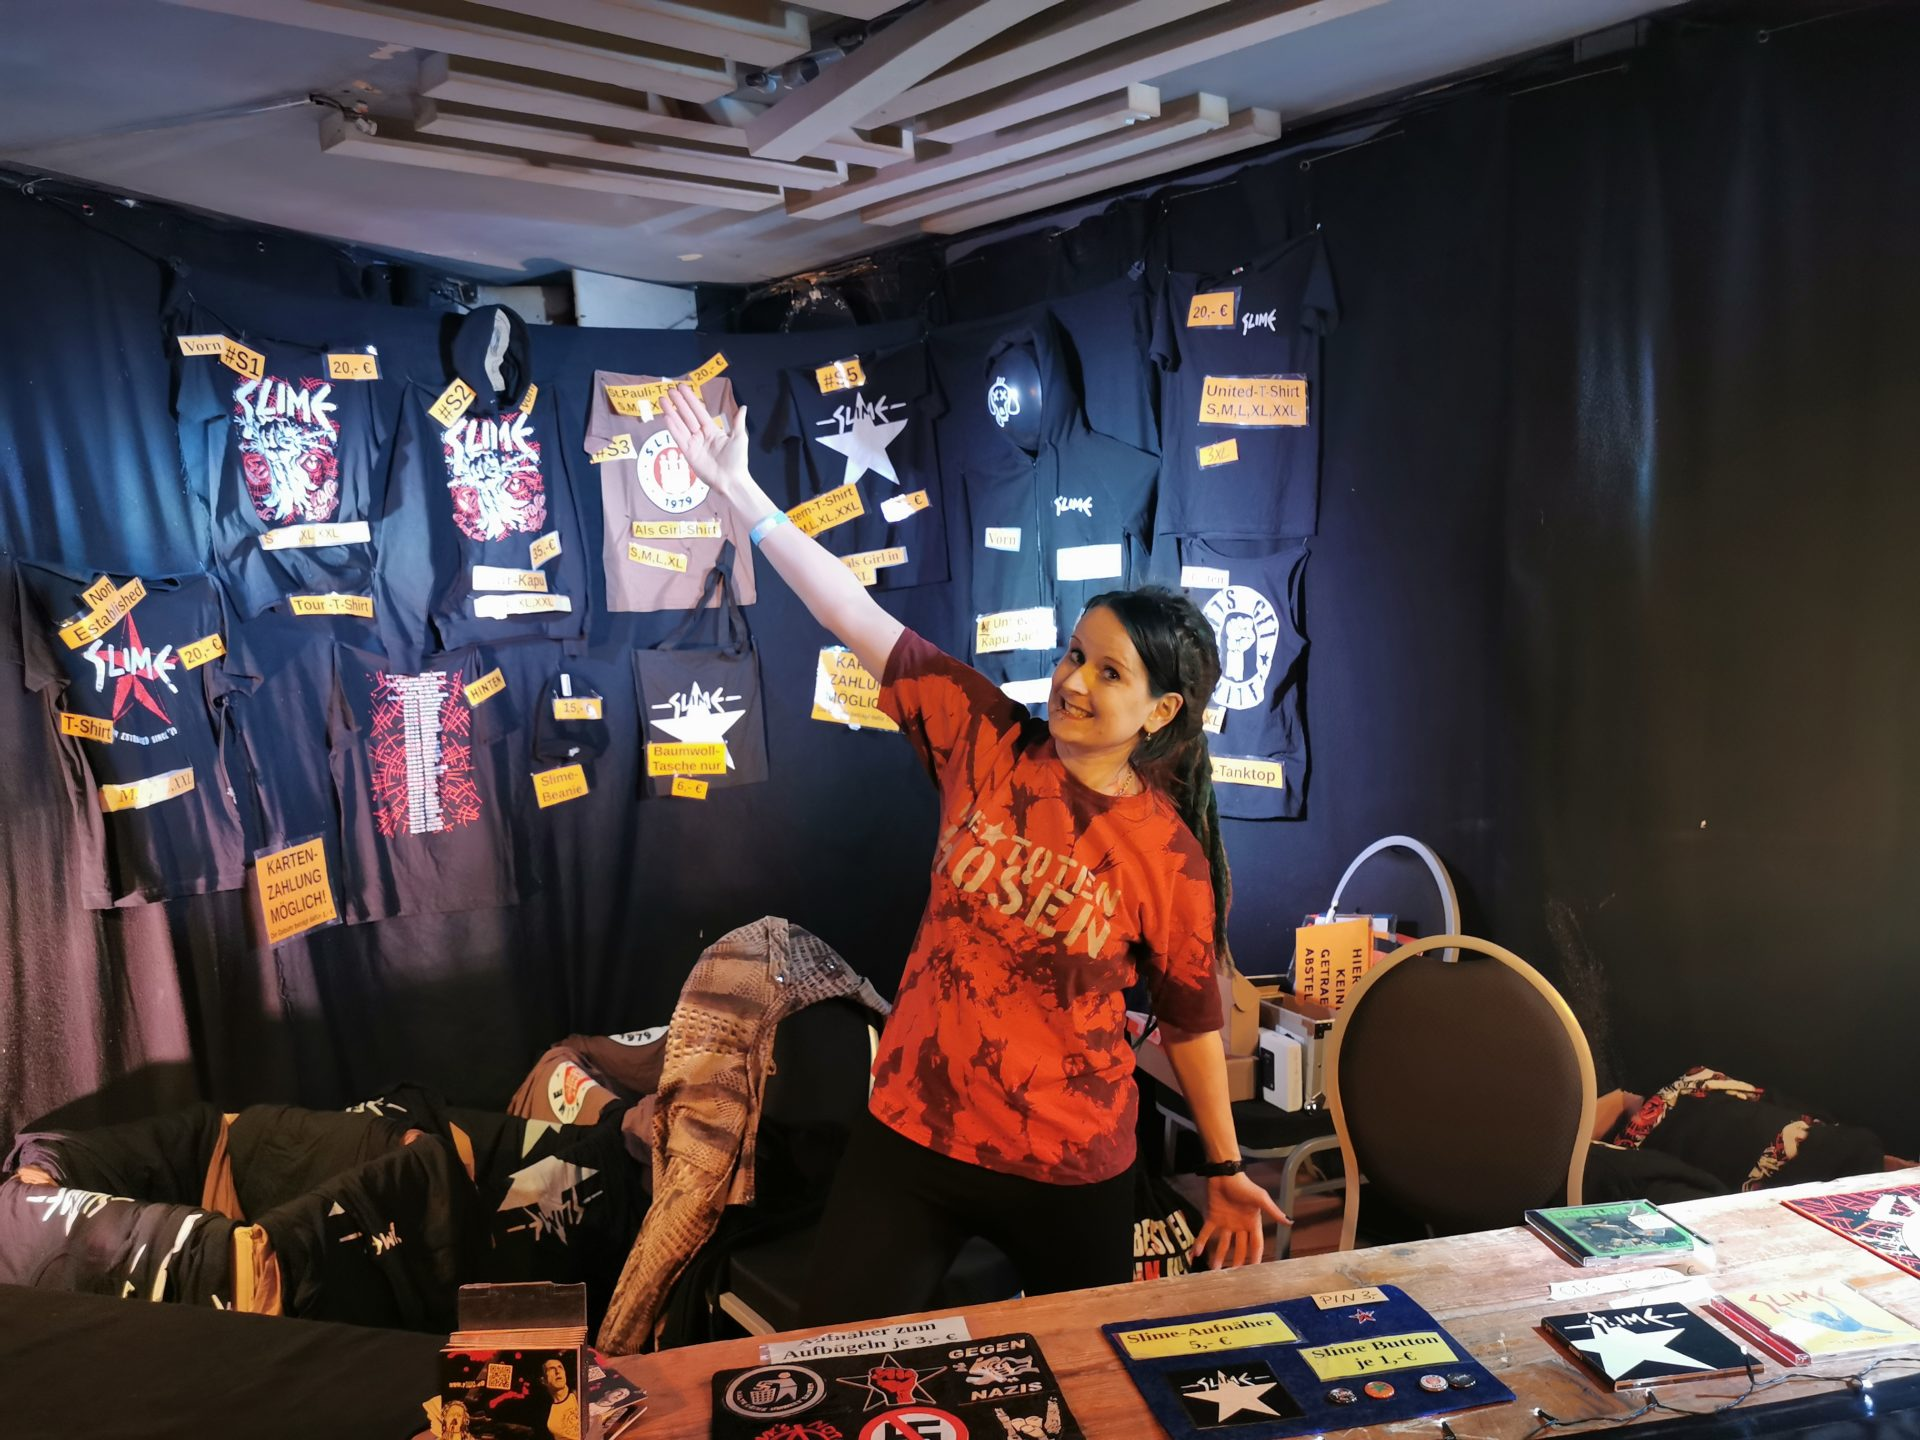 Frauen im Musikbusiness - Sindy am Merch 1